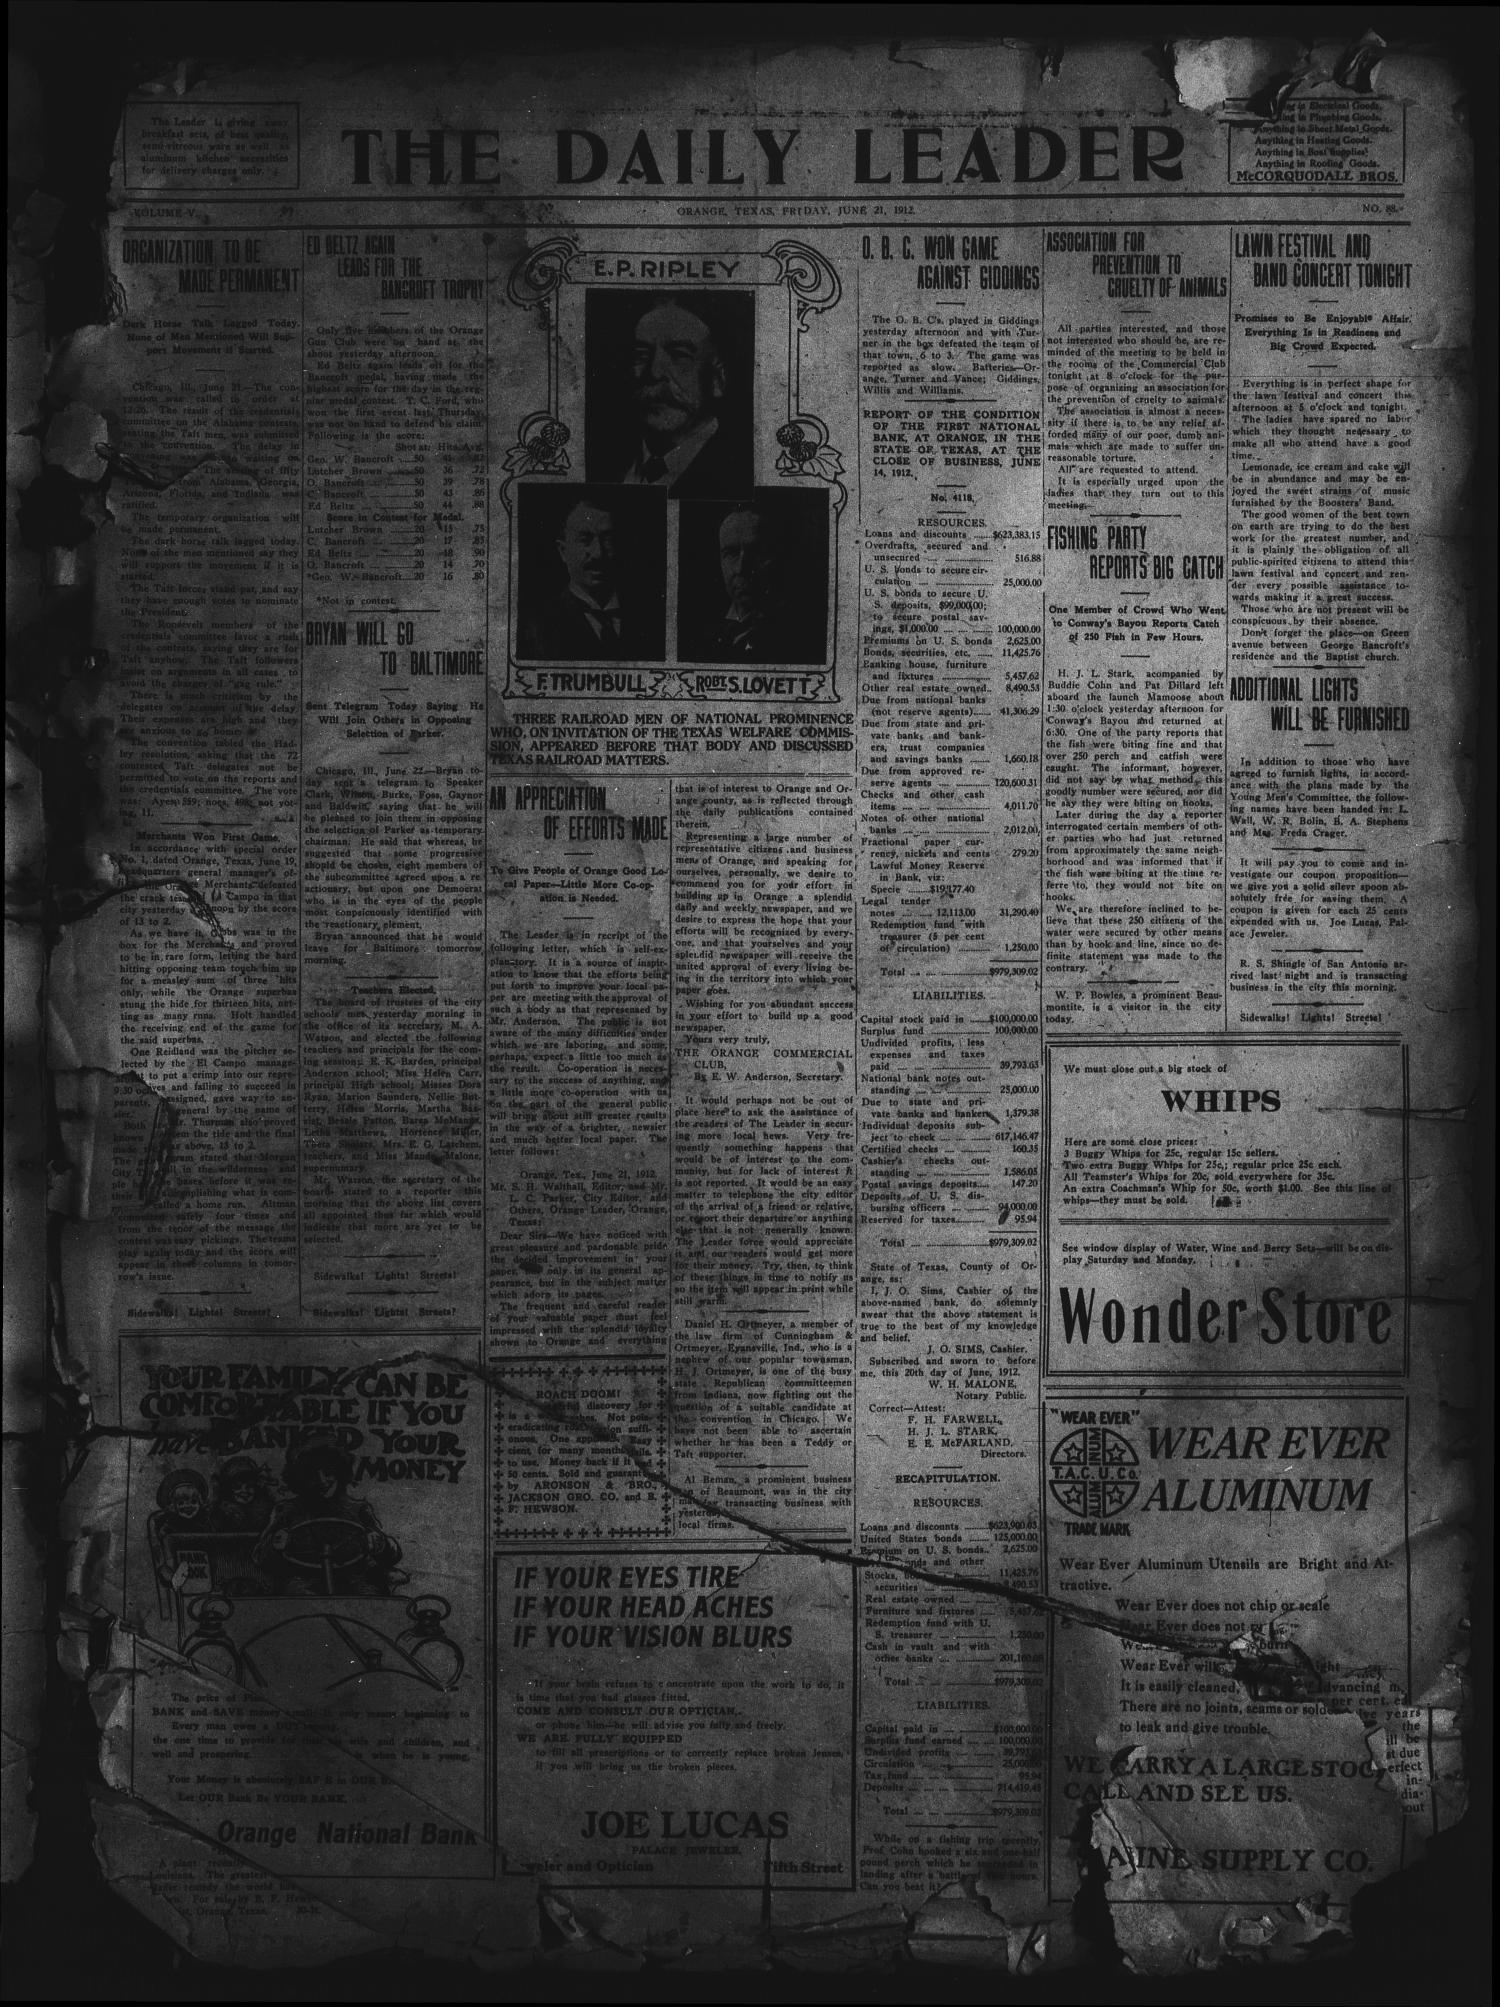 The Daily Leader. (Orange, Tex.), Vol. 5, No. 88, Ed. 1 Friday, June 21, 1912                                                                                                      [Sequence #]: 1 of 4